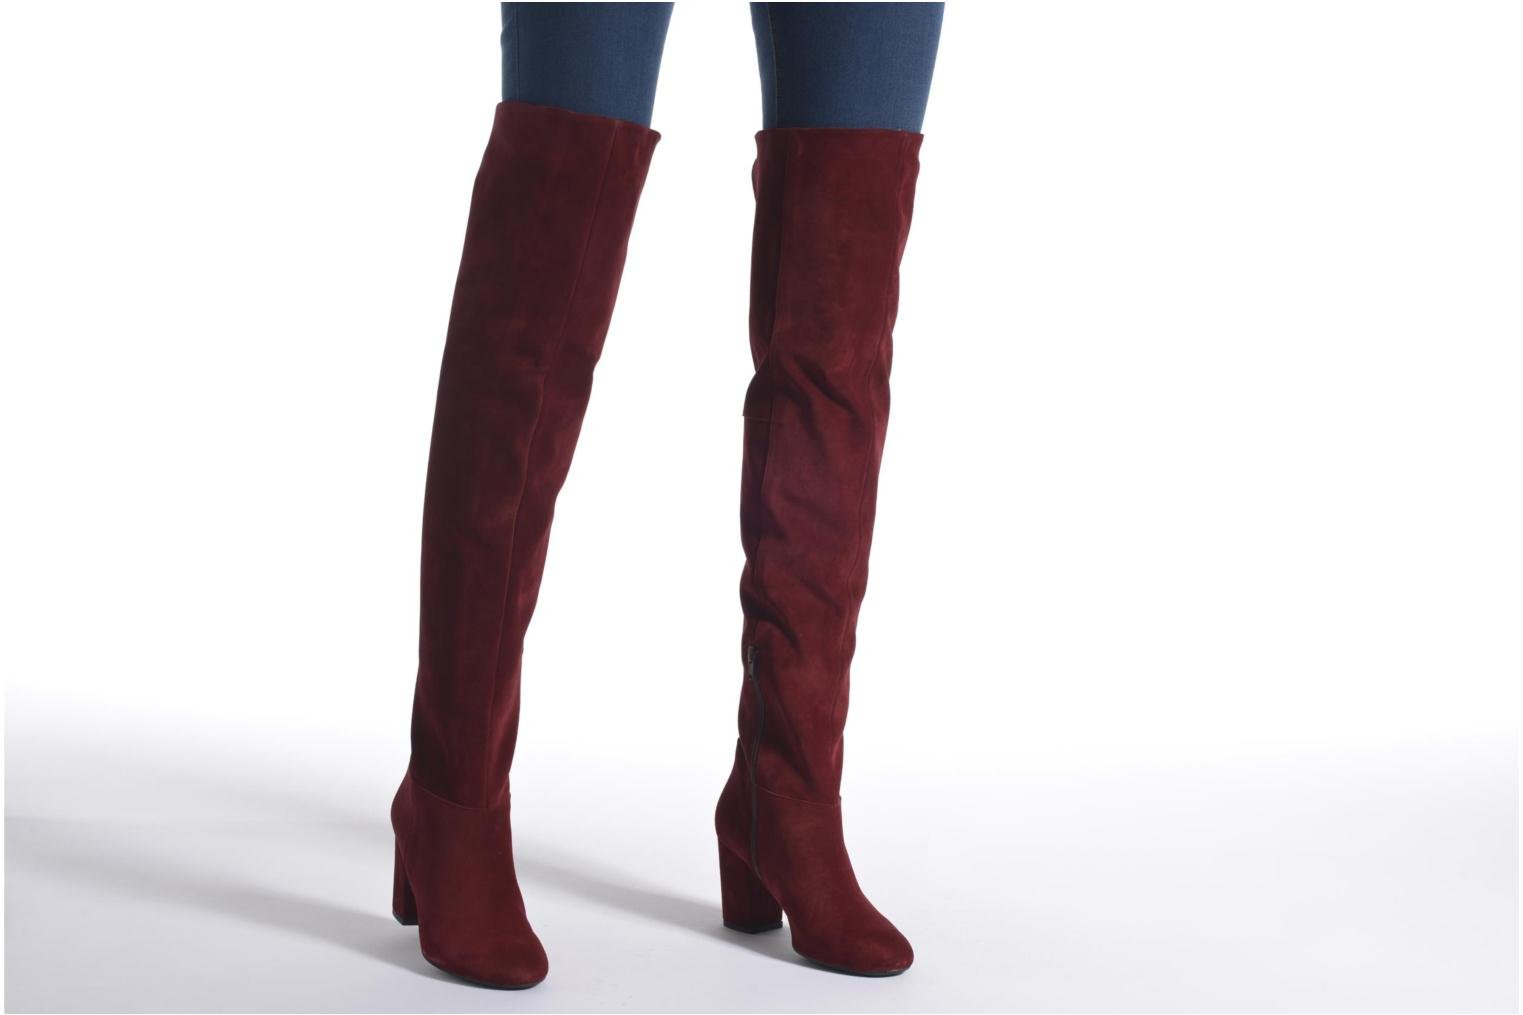 Made By Sarenza Boots Camp 13 1 Parere